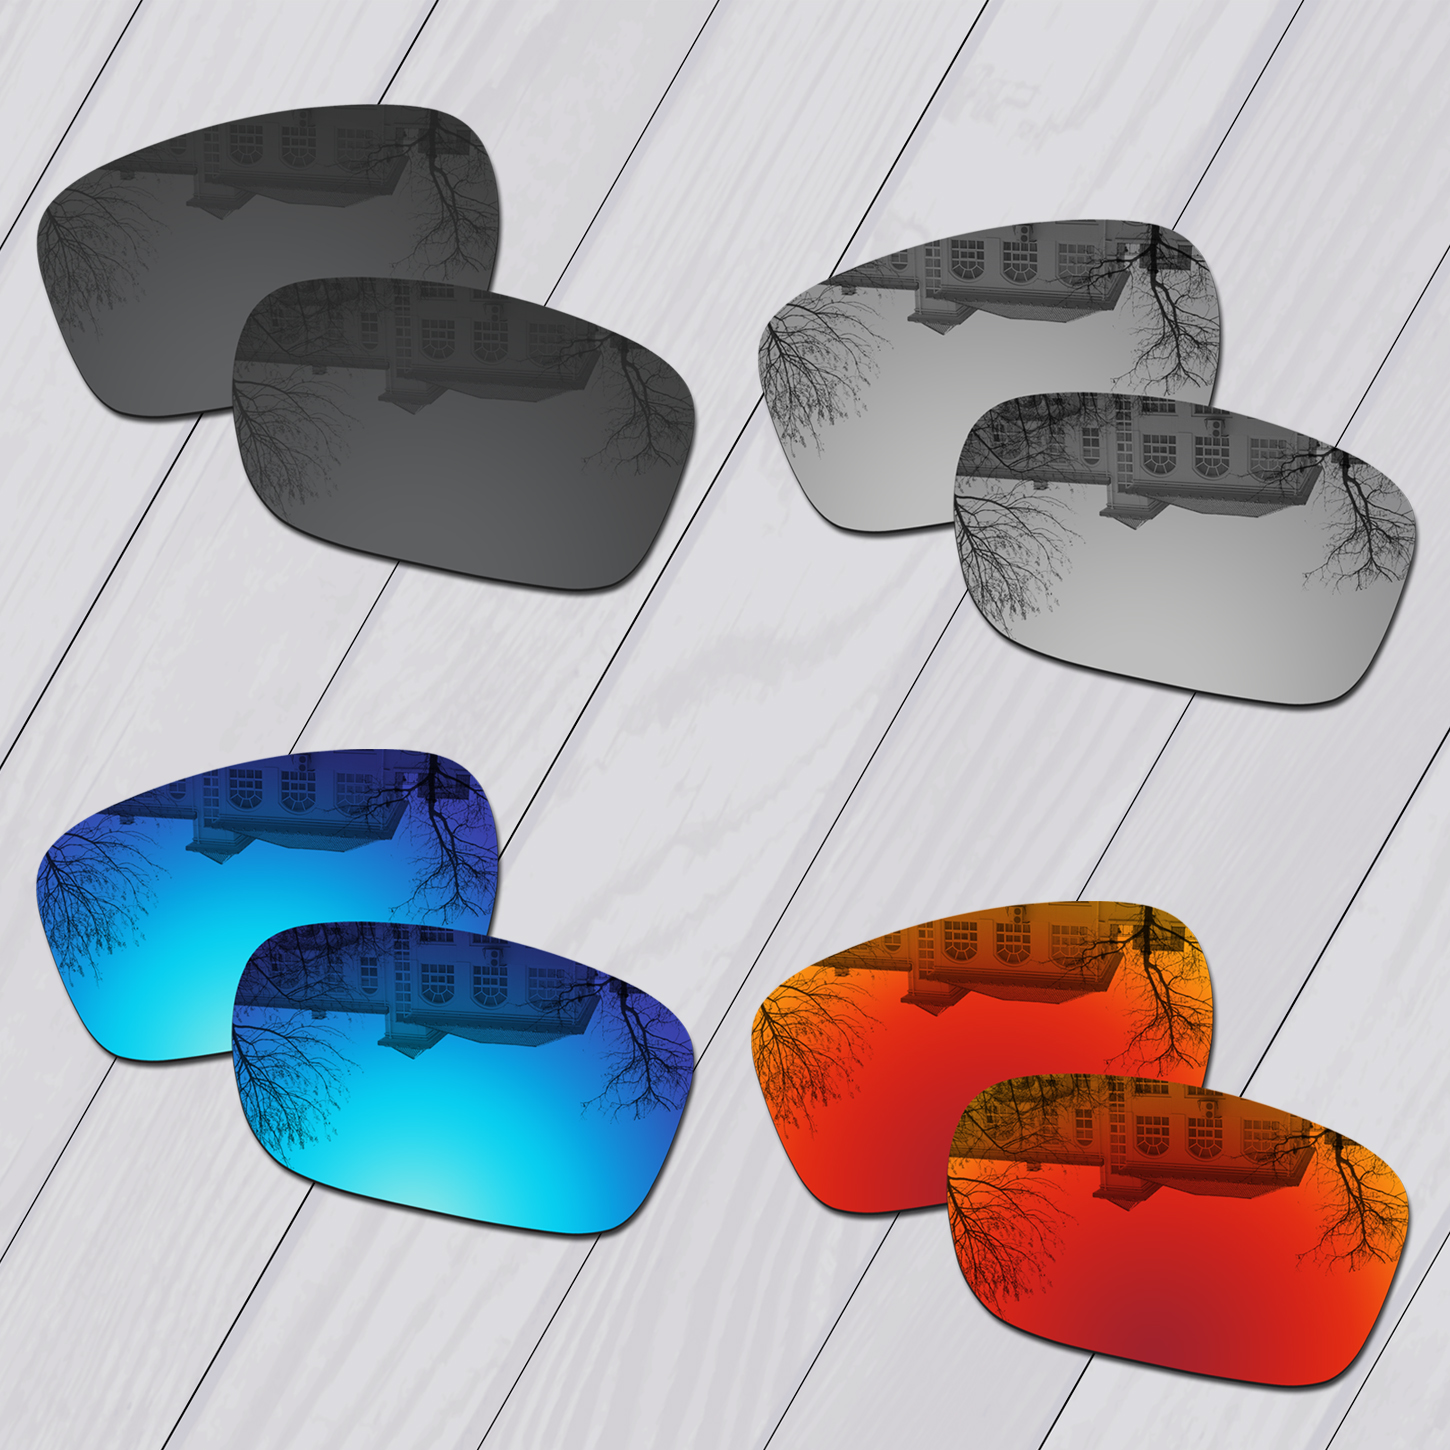 E.O.S 4 Pairs Black & Silver & Ice Blue & Fire Red Polarized Replacement Lenses for Oakley Mainlink Sunglasses